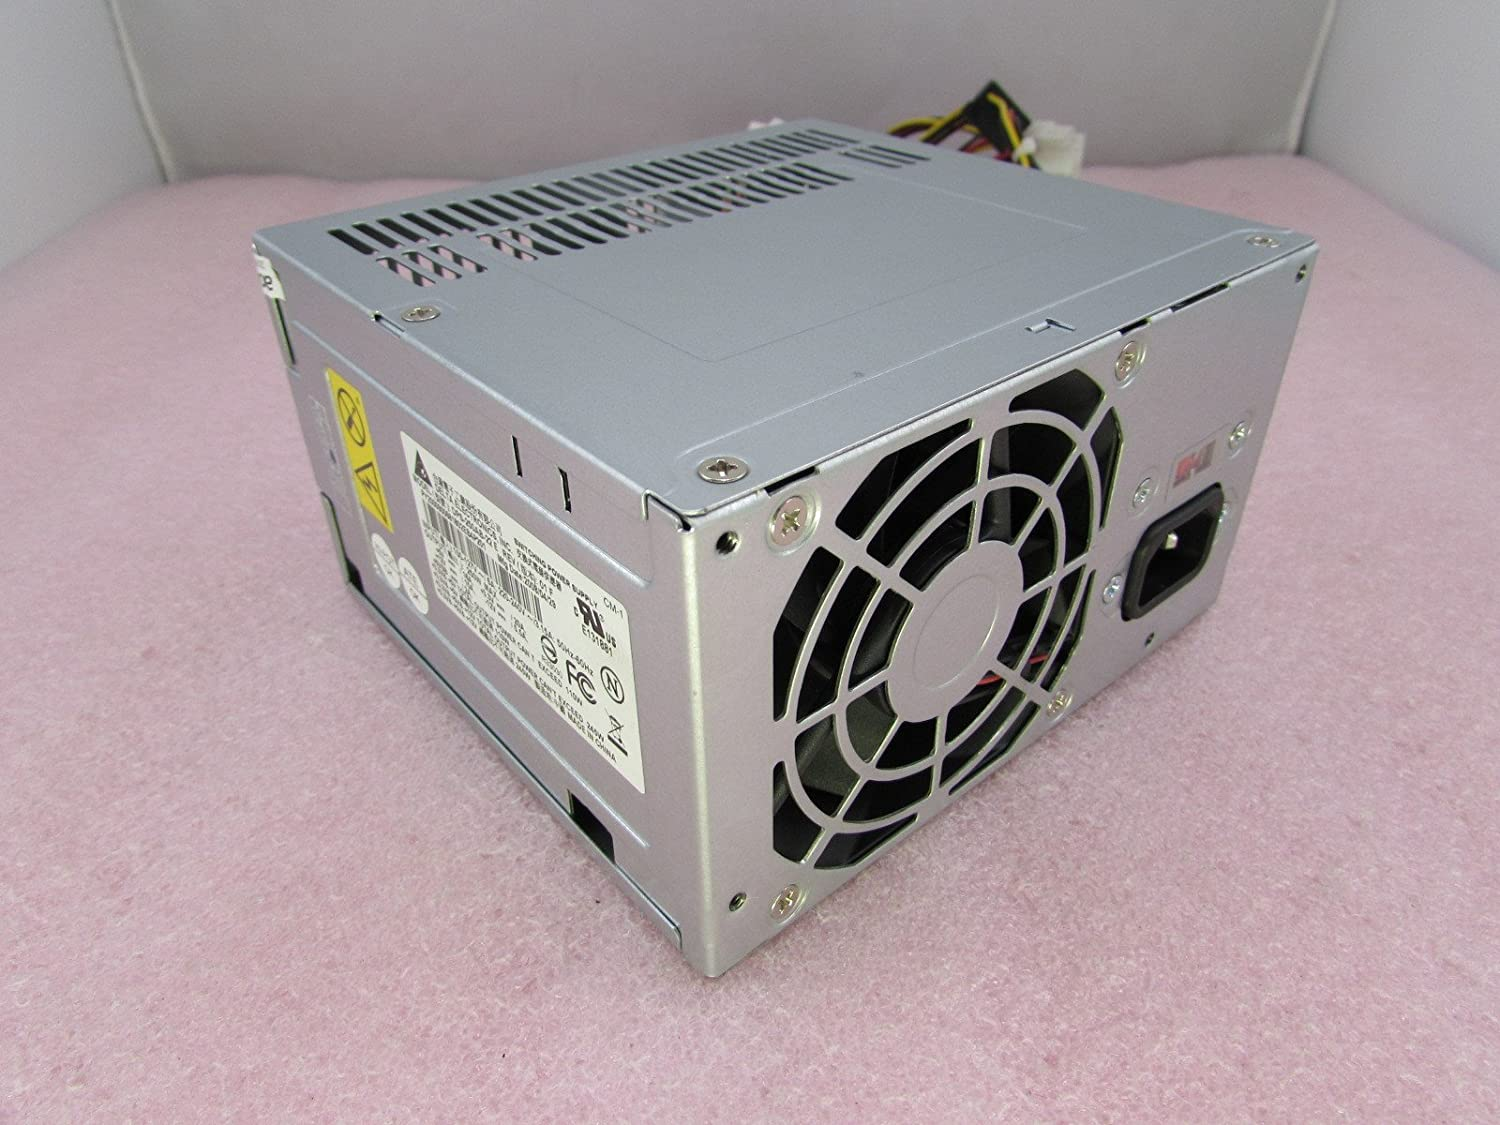 Acer Veriton Aspire 250W Power Supply PY.25009.006 Delta DPS-250AB-22 E REV:01F